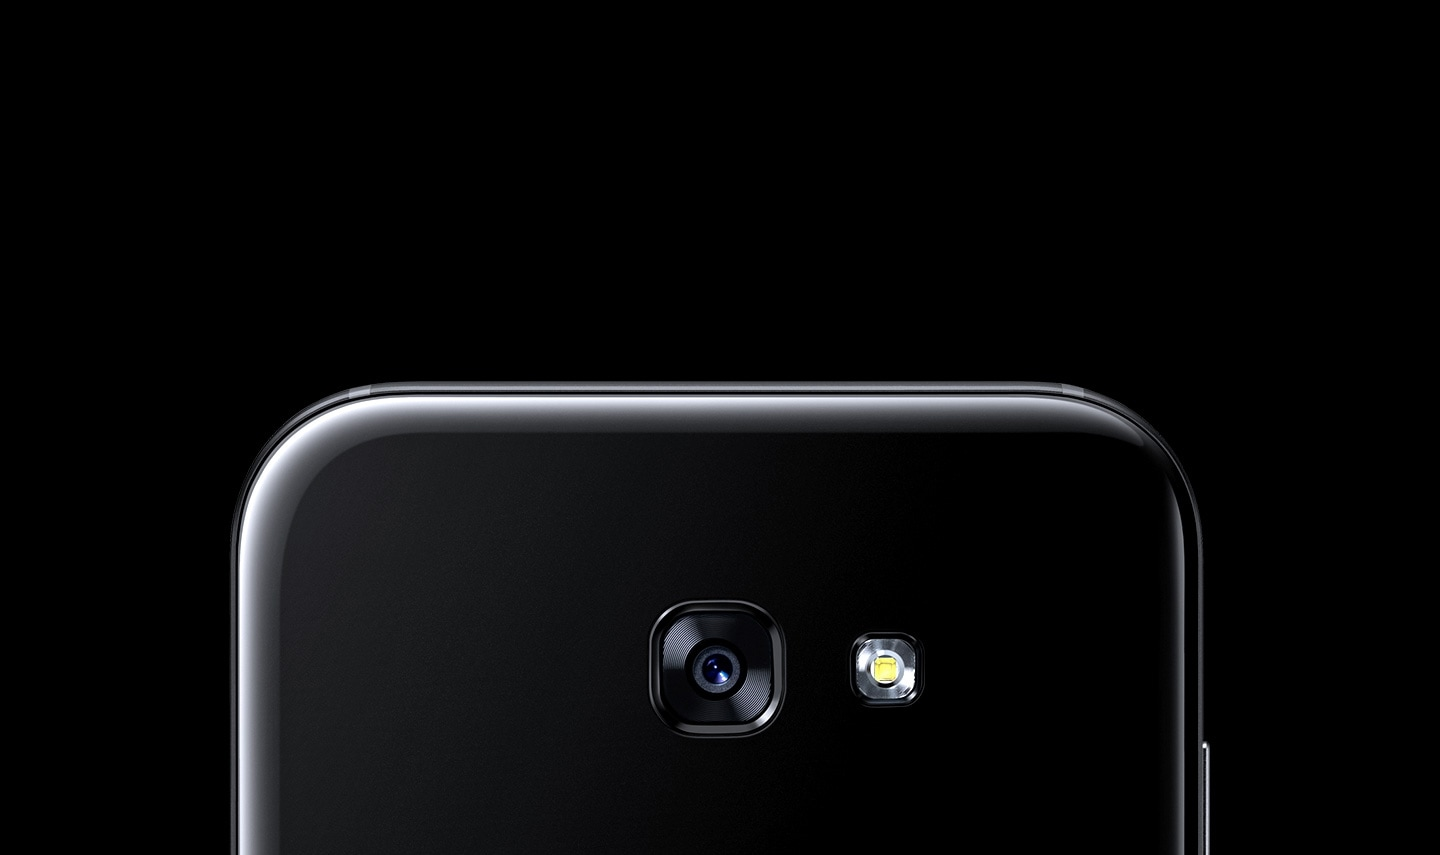 Close up of the Galaxy A7 (2017) rear camera.